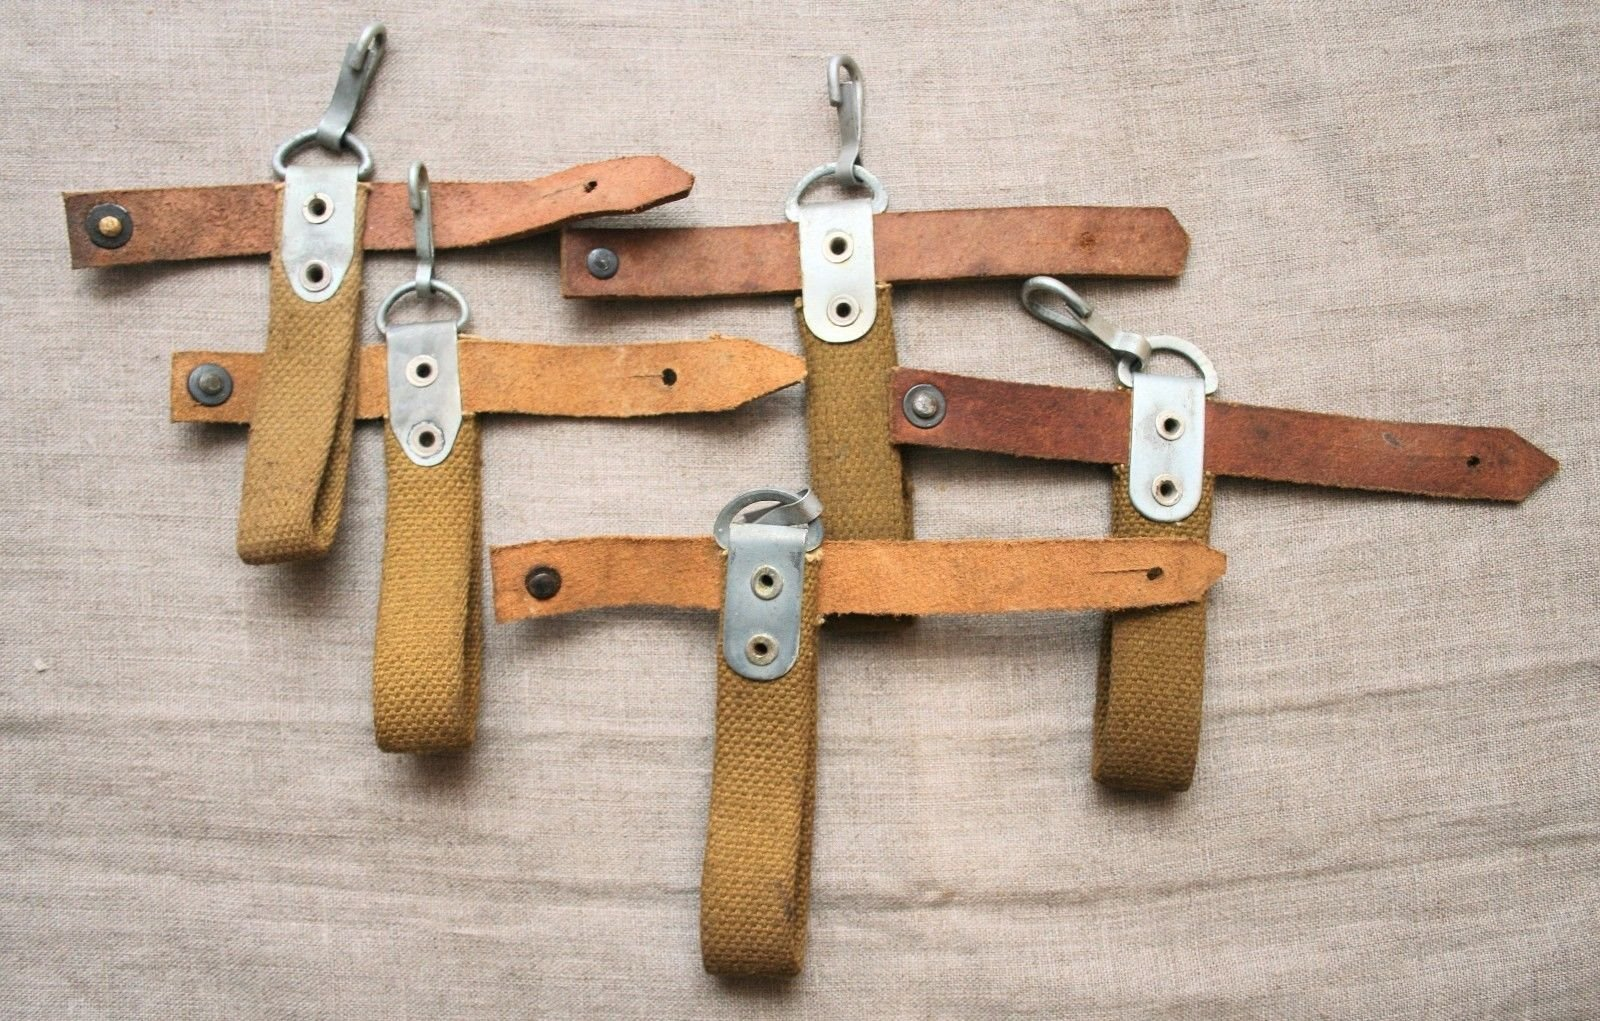 Russian fabric and leather hanger 14jpg.jpg